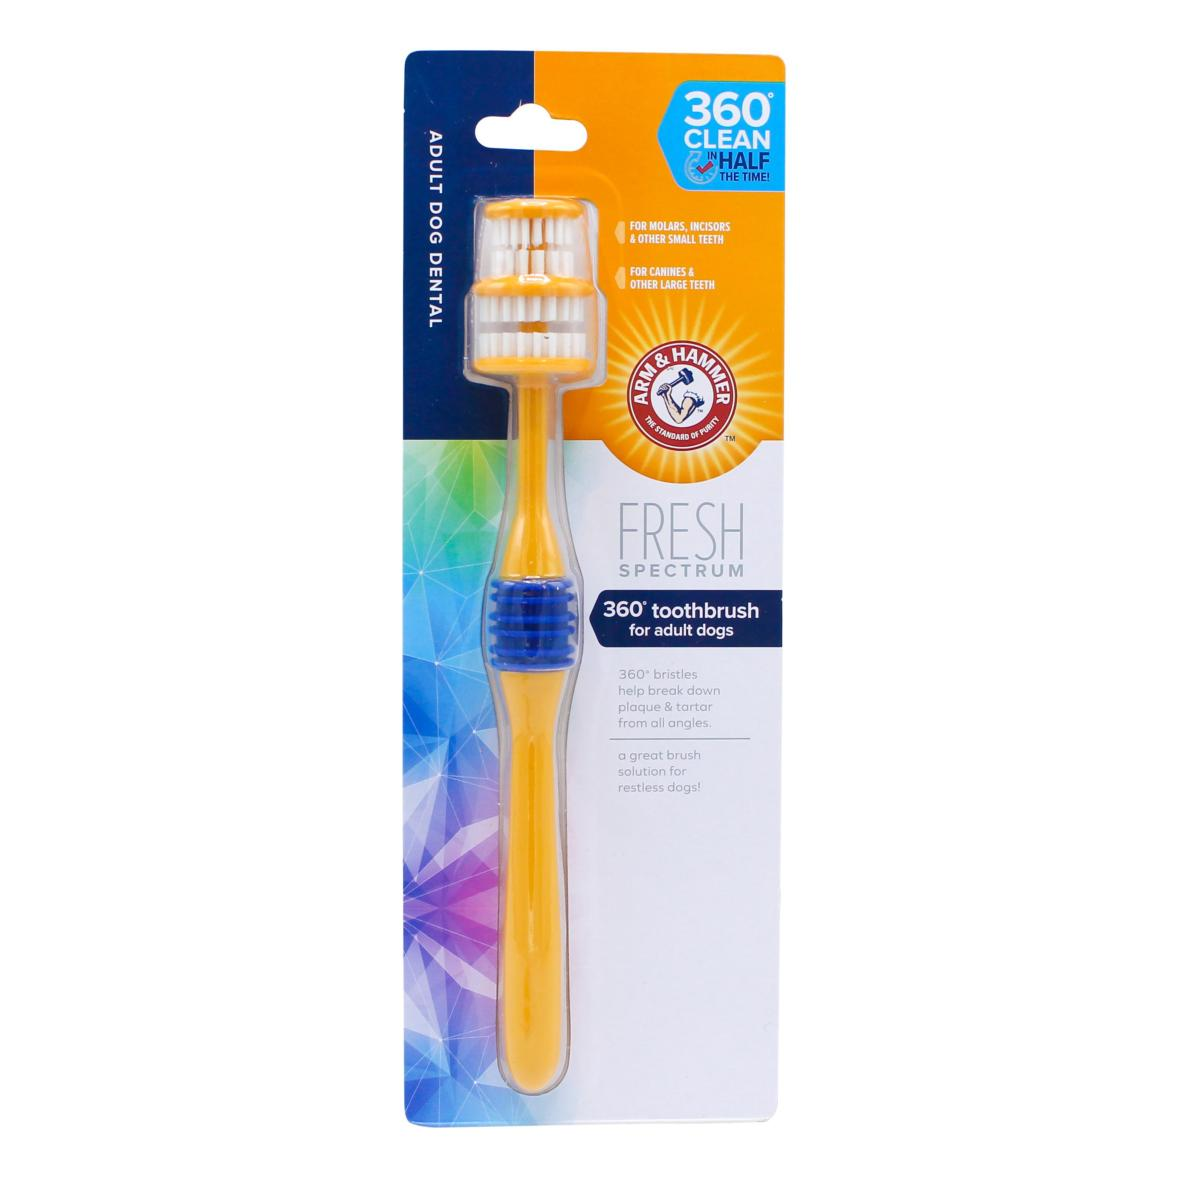 Arm & Hammer 360° Toothbrush for Adult Dogs